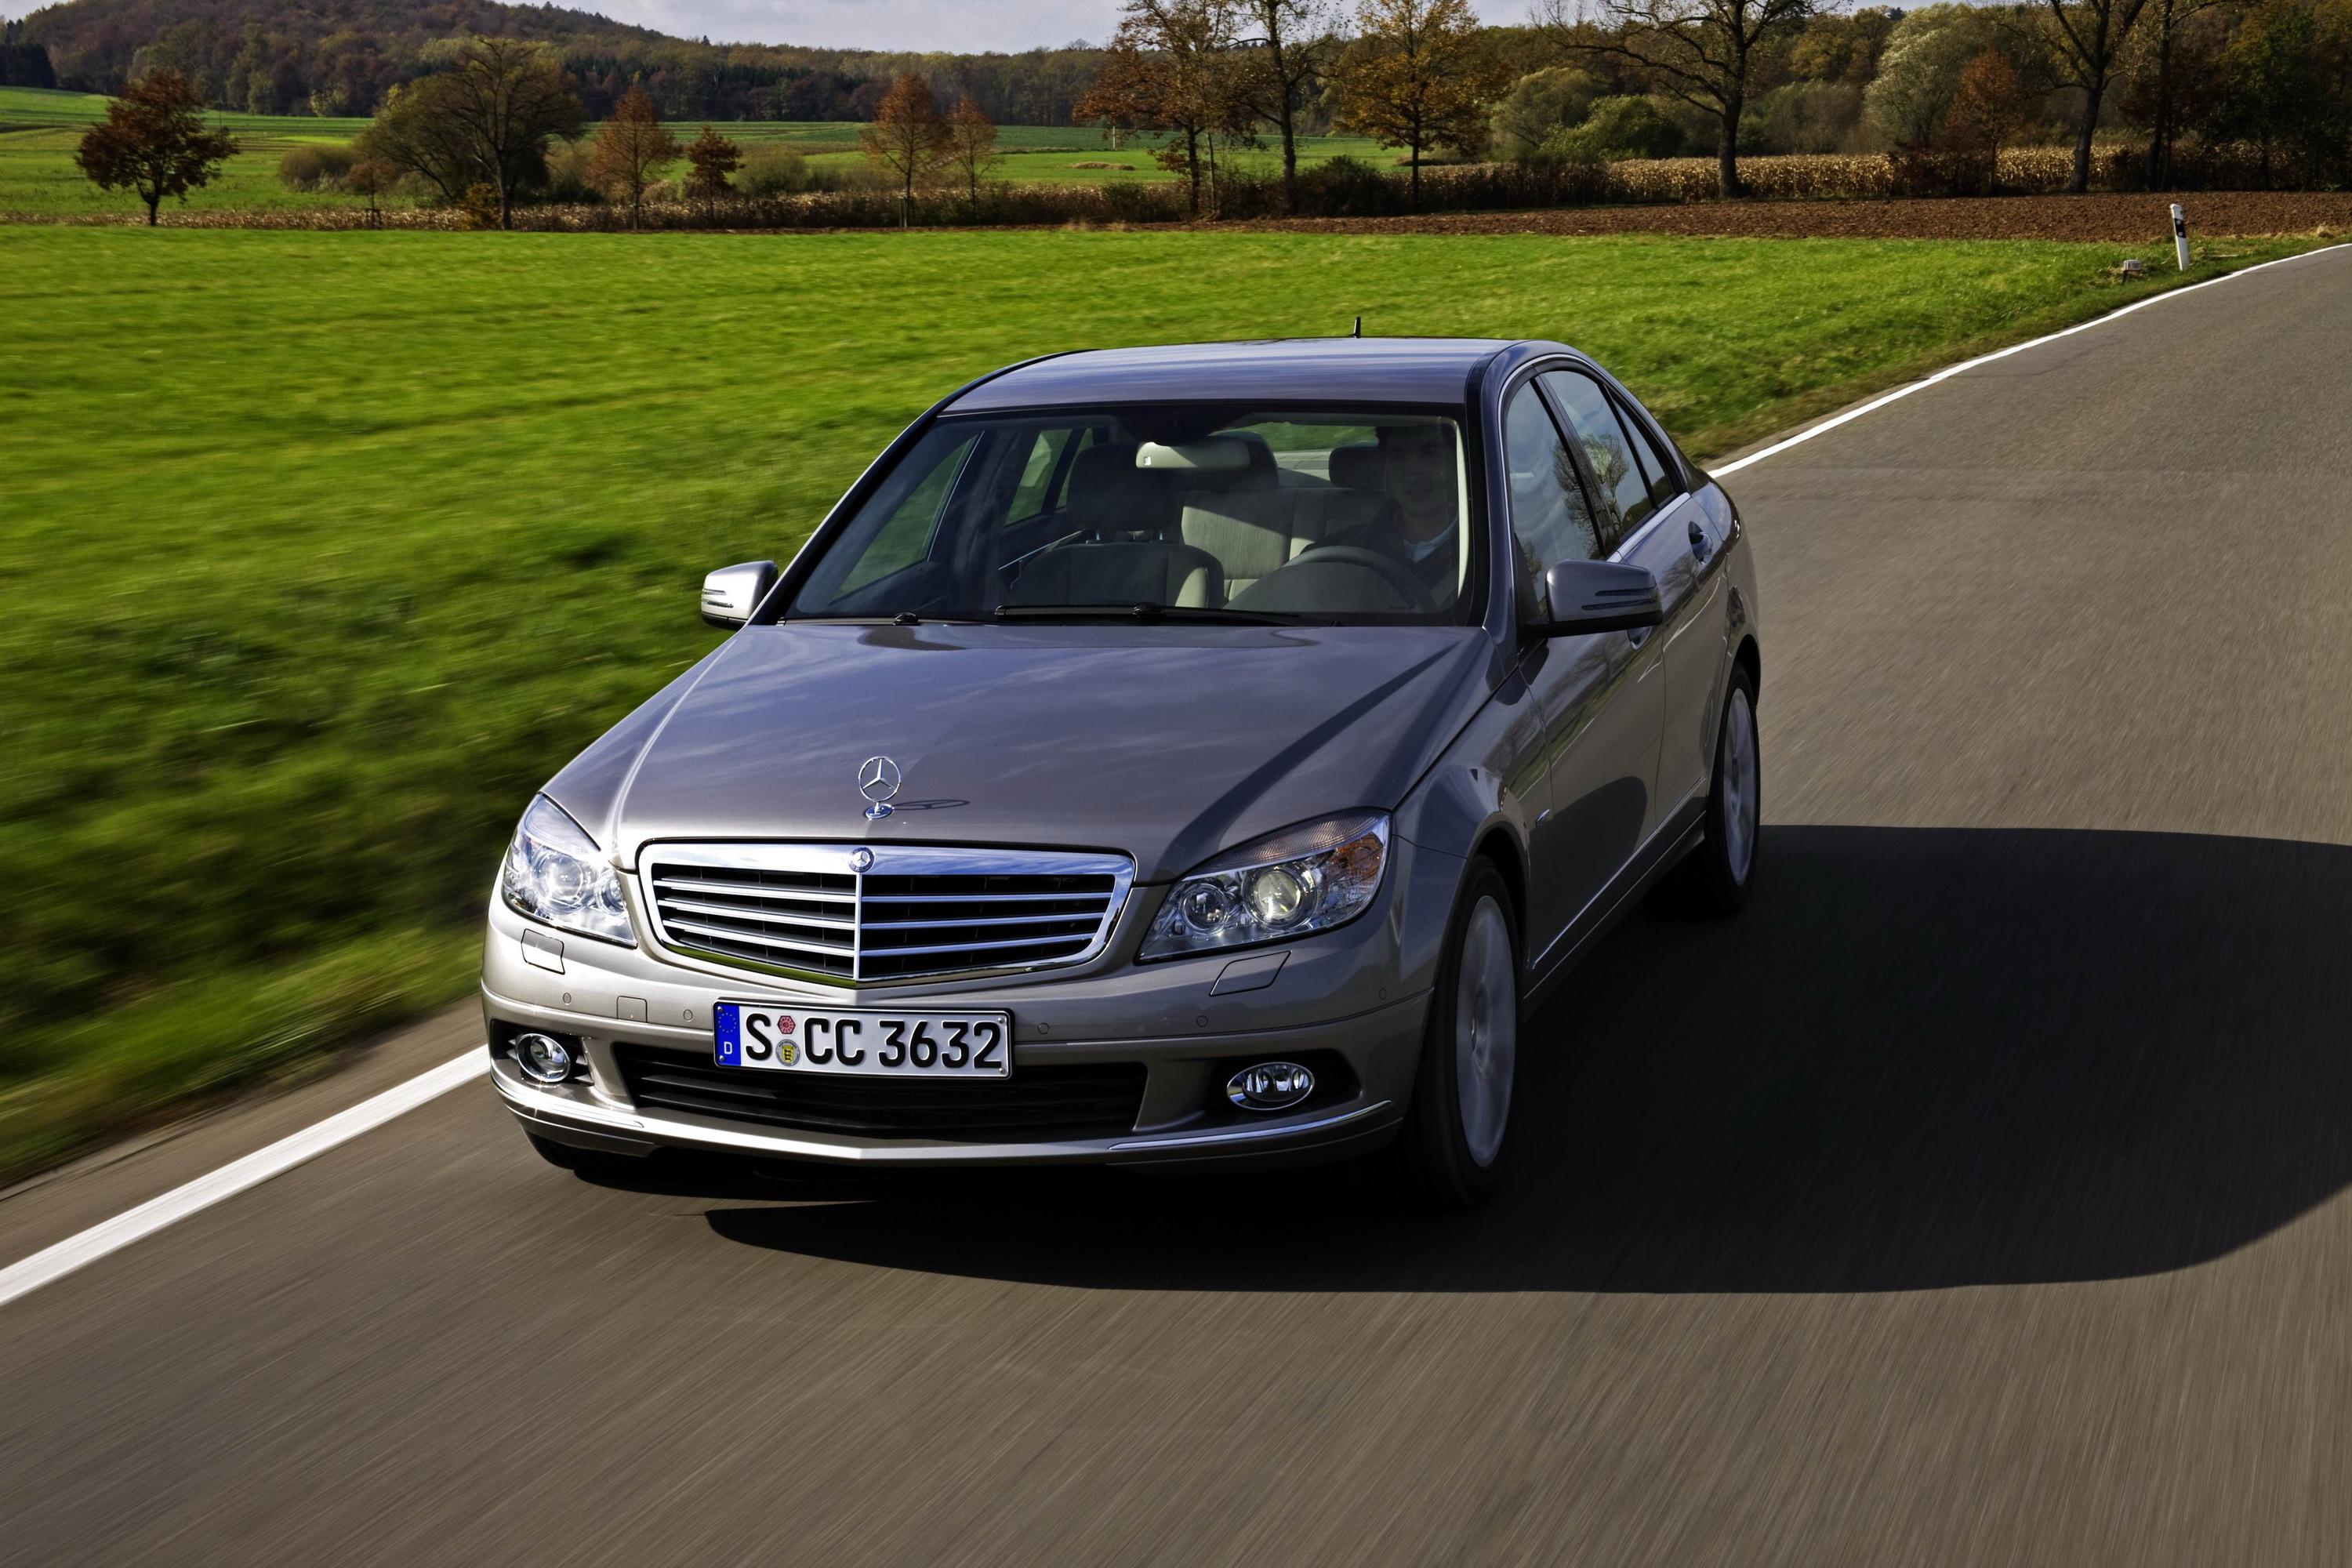 2009 mercedes c350 cgi blueefficiency review top speed. Black Bedroom Furniture Sets. Home Design Ideas